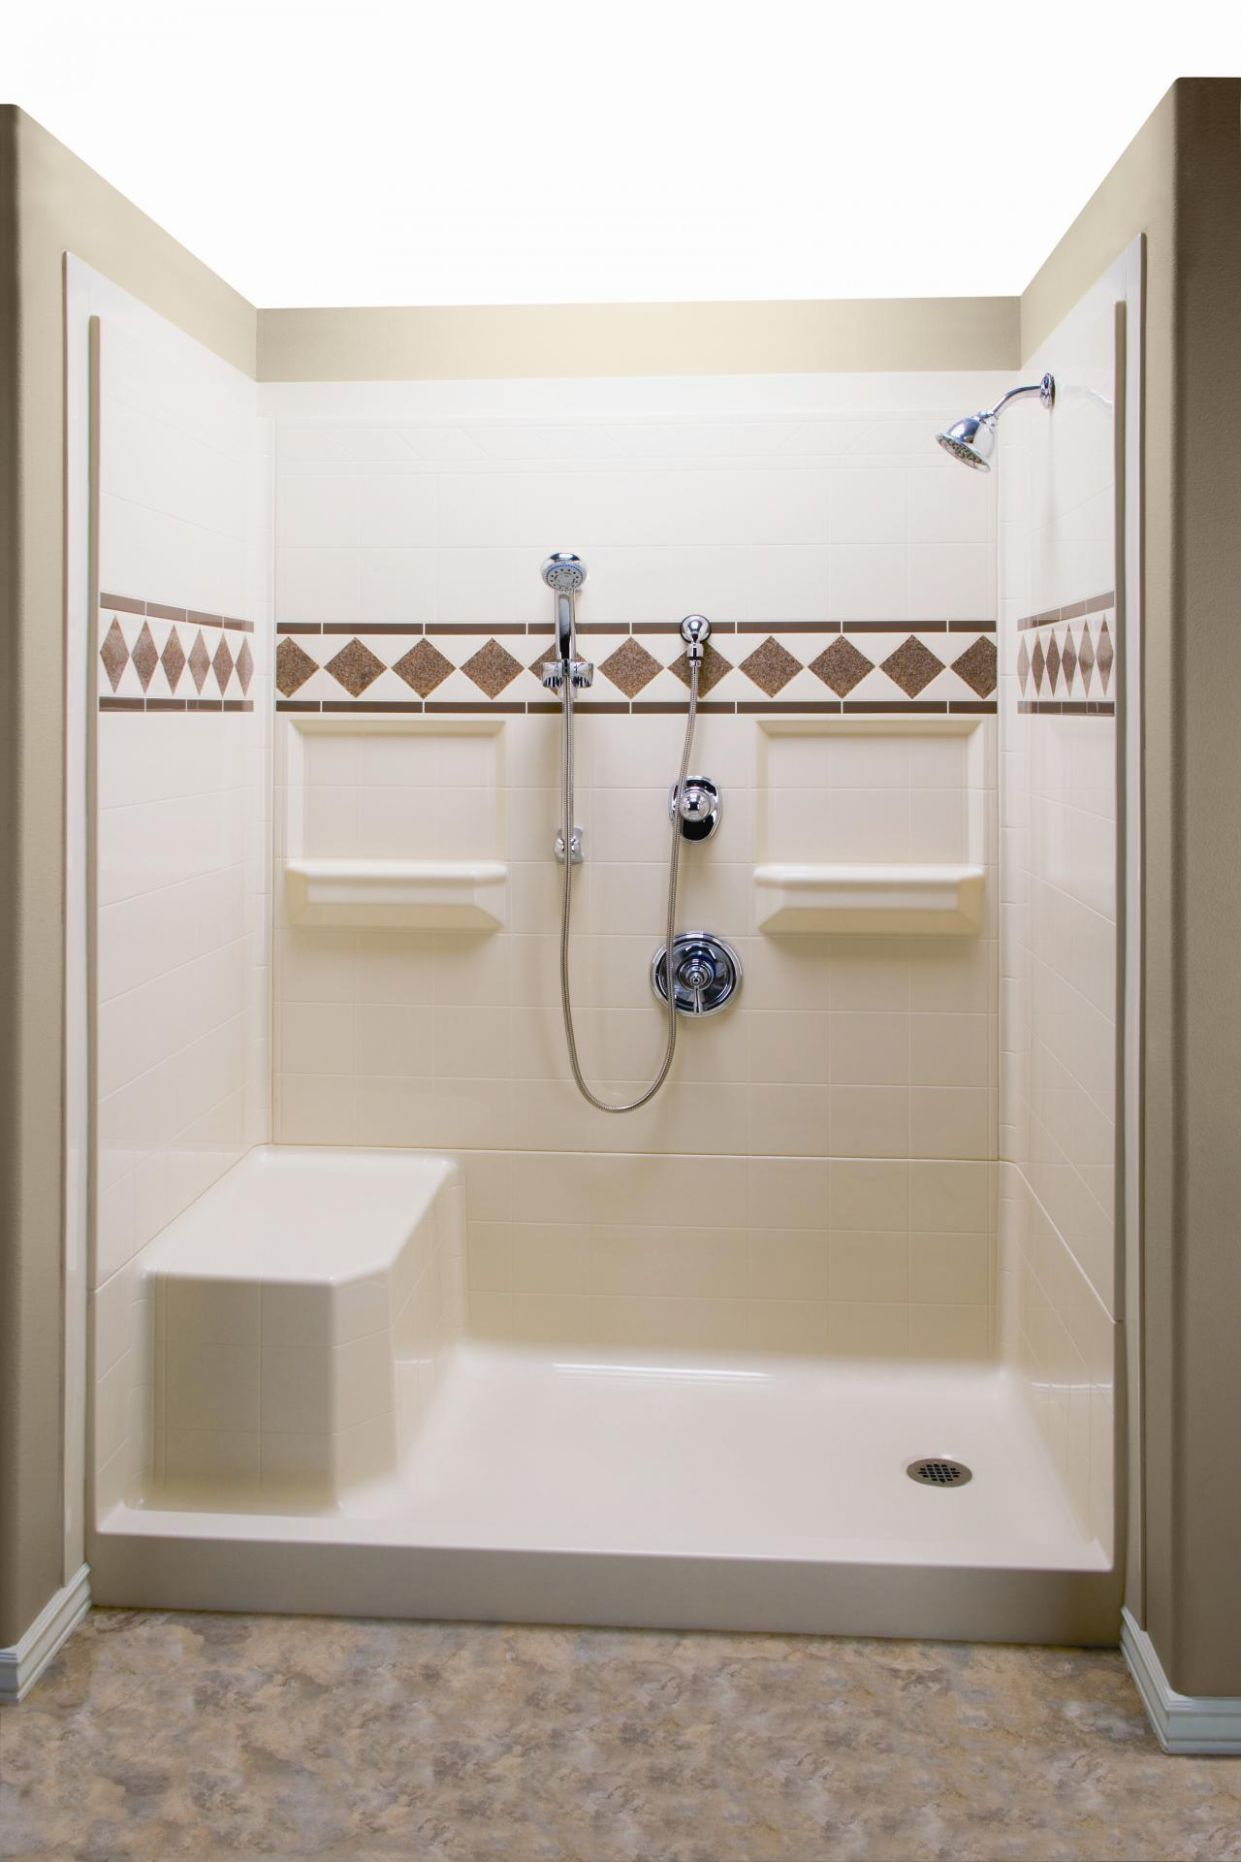 Bathroom Lowes Shower Heads And Faucets Rain Head Small Ideas ..